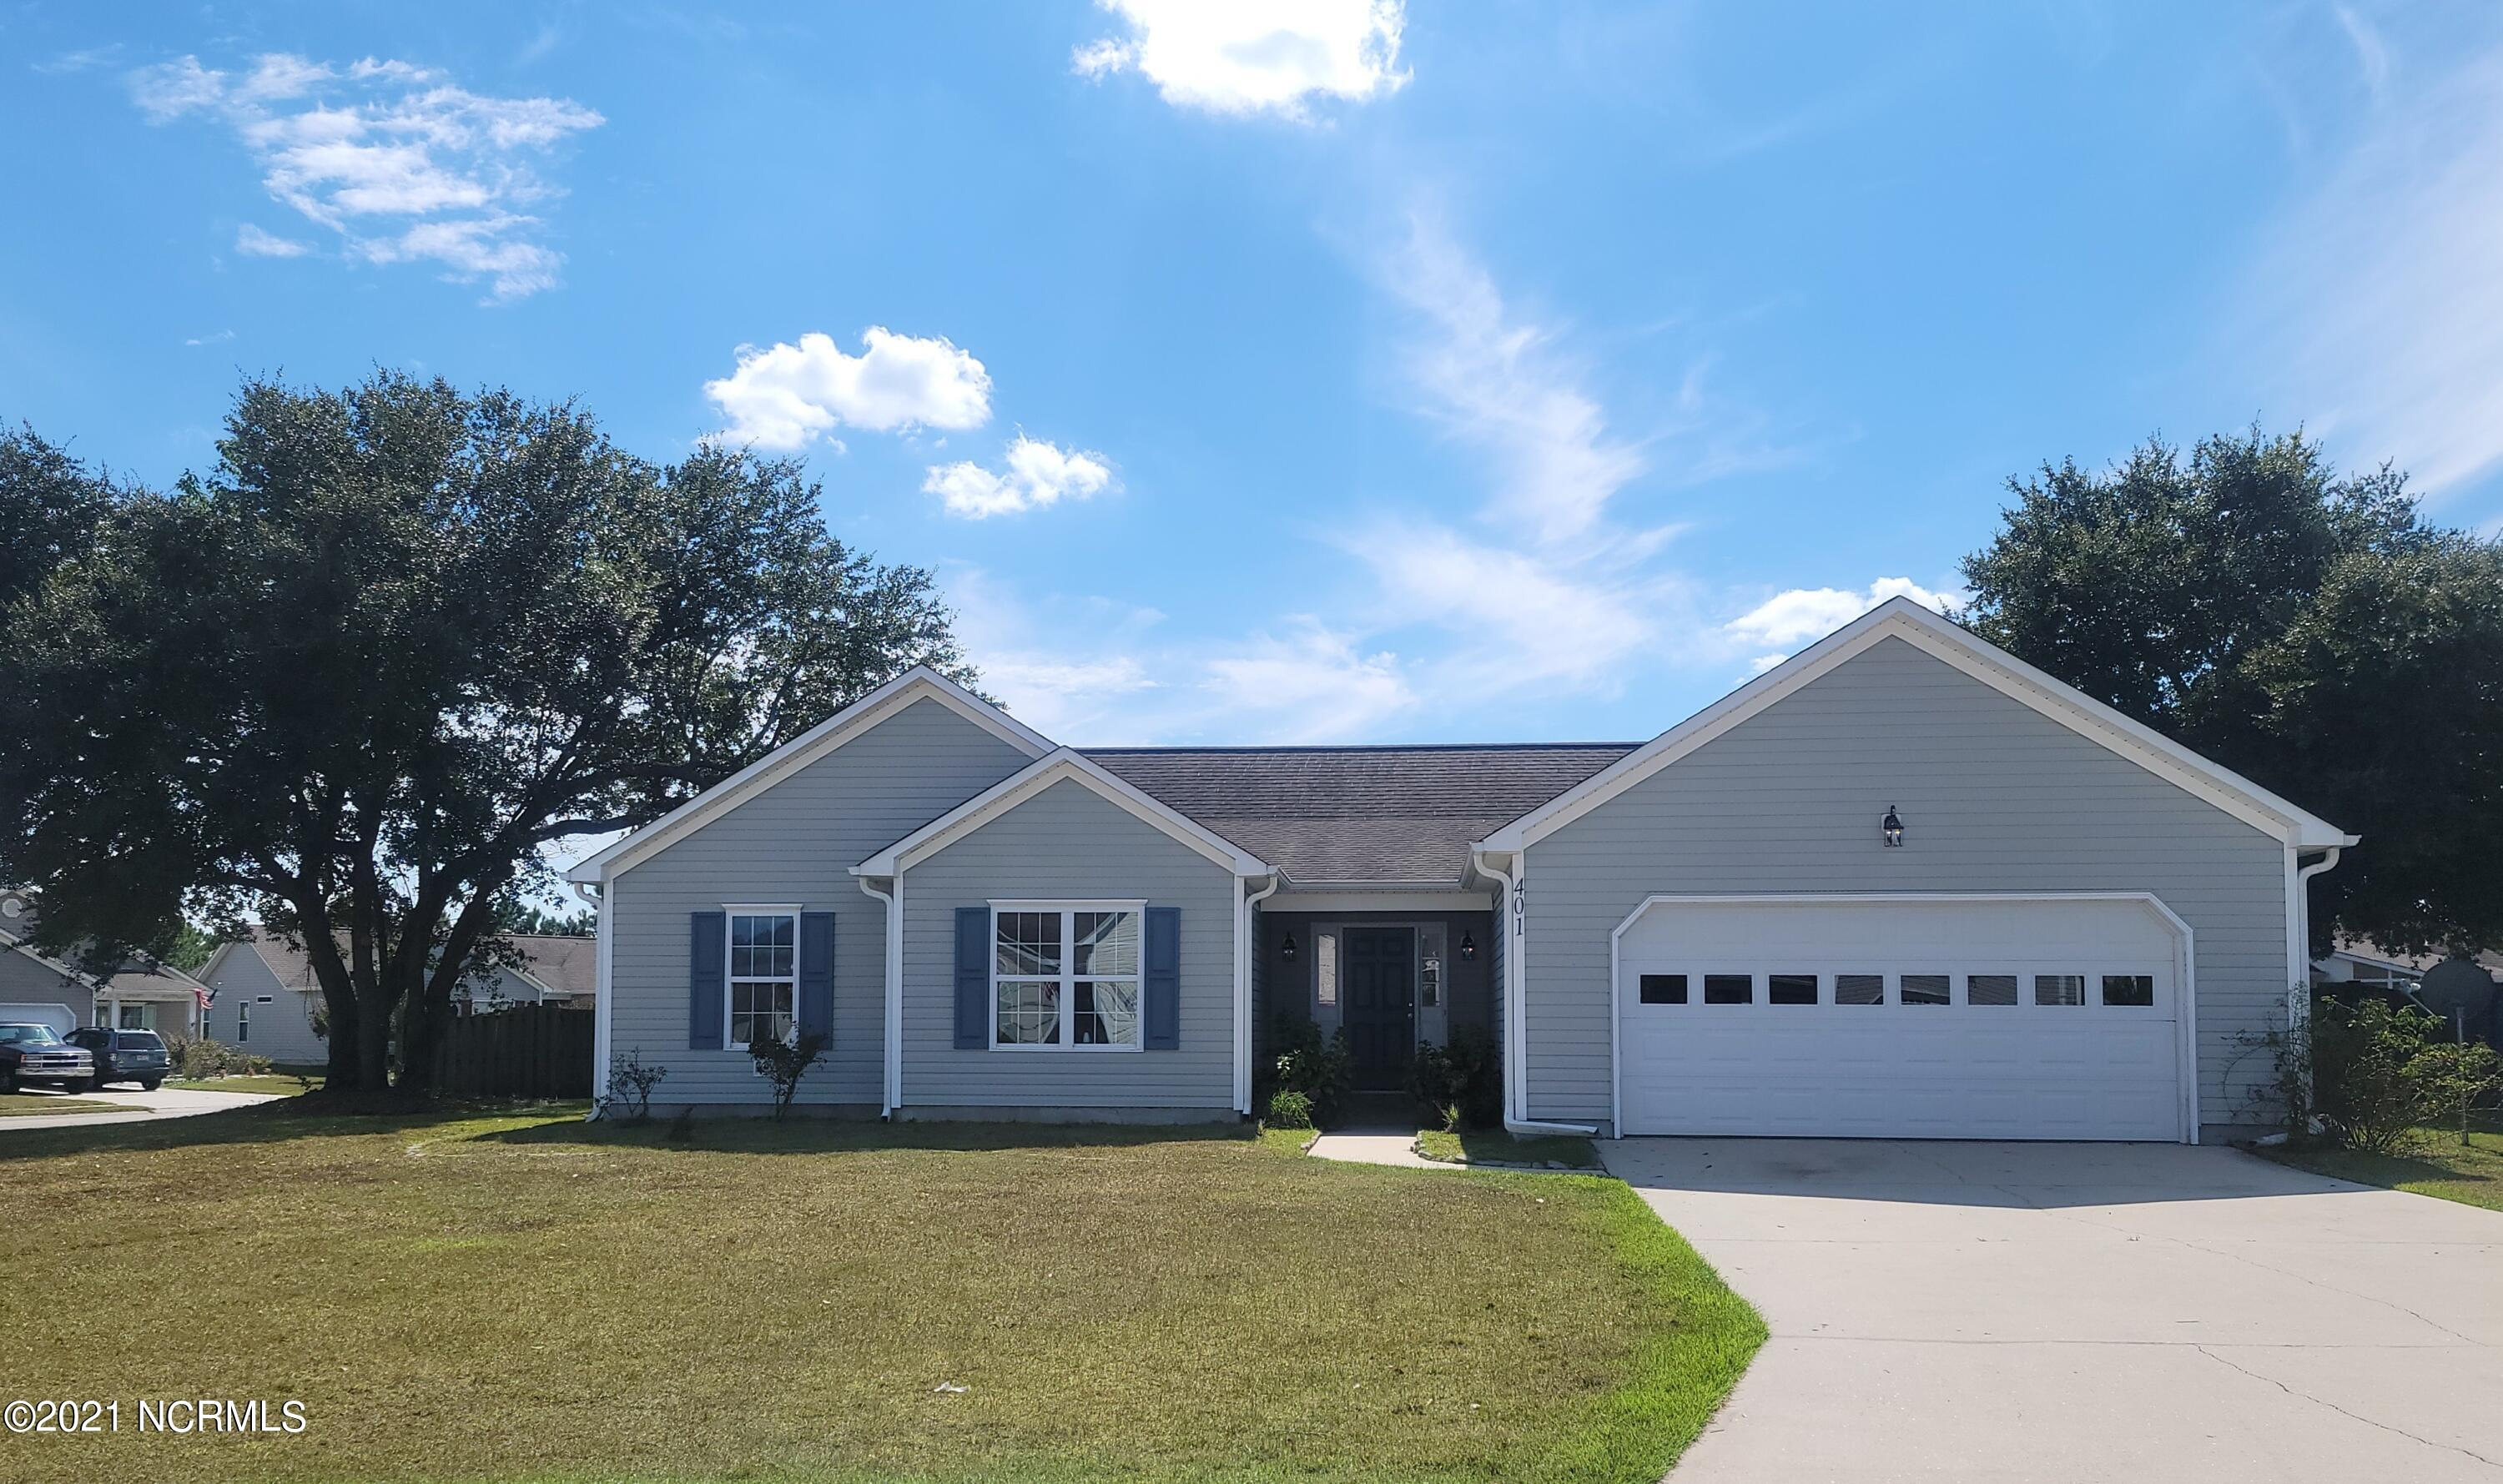 This 3 bedroom, 2 bath home is located in The Neighborhoods of Holly Ridge, only minutes from beaches, MARSOC, Stone Bay, and Camp LeJeune. Home sits on a nice, large corner lot! Walk in the front door to a spacious living room that features a gas fireplace.  There is a nice flowing concept from the living area to the kitchen and dinning room.  When entering from the two car garage, you walk in to the laundry room that then enters the kitchen. Spacious master bedroom suite, walk-in closet and a master bath with dual vanities, stand up shower, and a large bathtub. Bedroom two and three share a very nice hall bathroom with a shower/tub combo. Linen closet in this hall as well. Relax on your covered back porch overlooking a spacious fenced in backyard.  Luxury vinyl plank flooring throughout the home. Kitchen has new cabinets, countertops, and a new stove and microwave.  Bathrooms have new vanities.  Whole home has been freshly painted and covered back patio will be screened in!  Neighborhood features include park/picnic area, sidewalks & more. This charming home is a perfect place to call home or a great second home getaway being less than 5 miles to the beautiful beaches of Topsail Island. Schedule your showing before this one is gone!!  ***We are in a multiple offer situation.  Please submit final and best by Tuesday at 5 p.m. 10/19/21.***